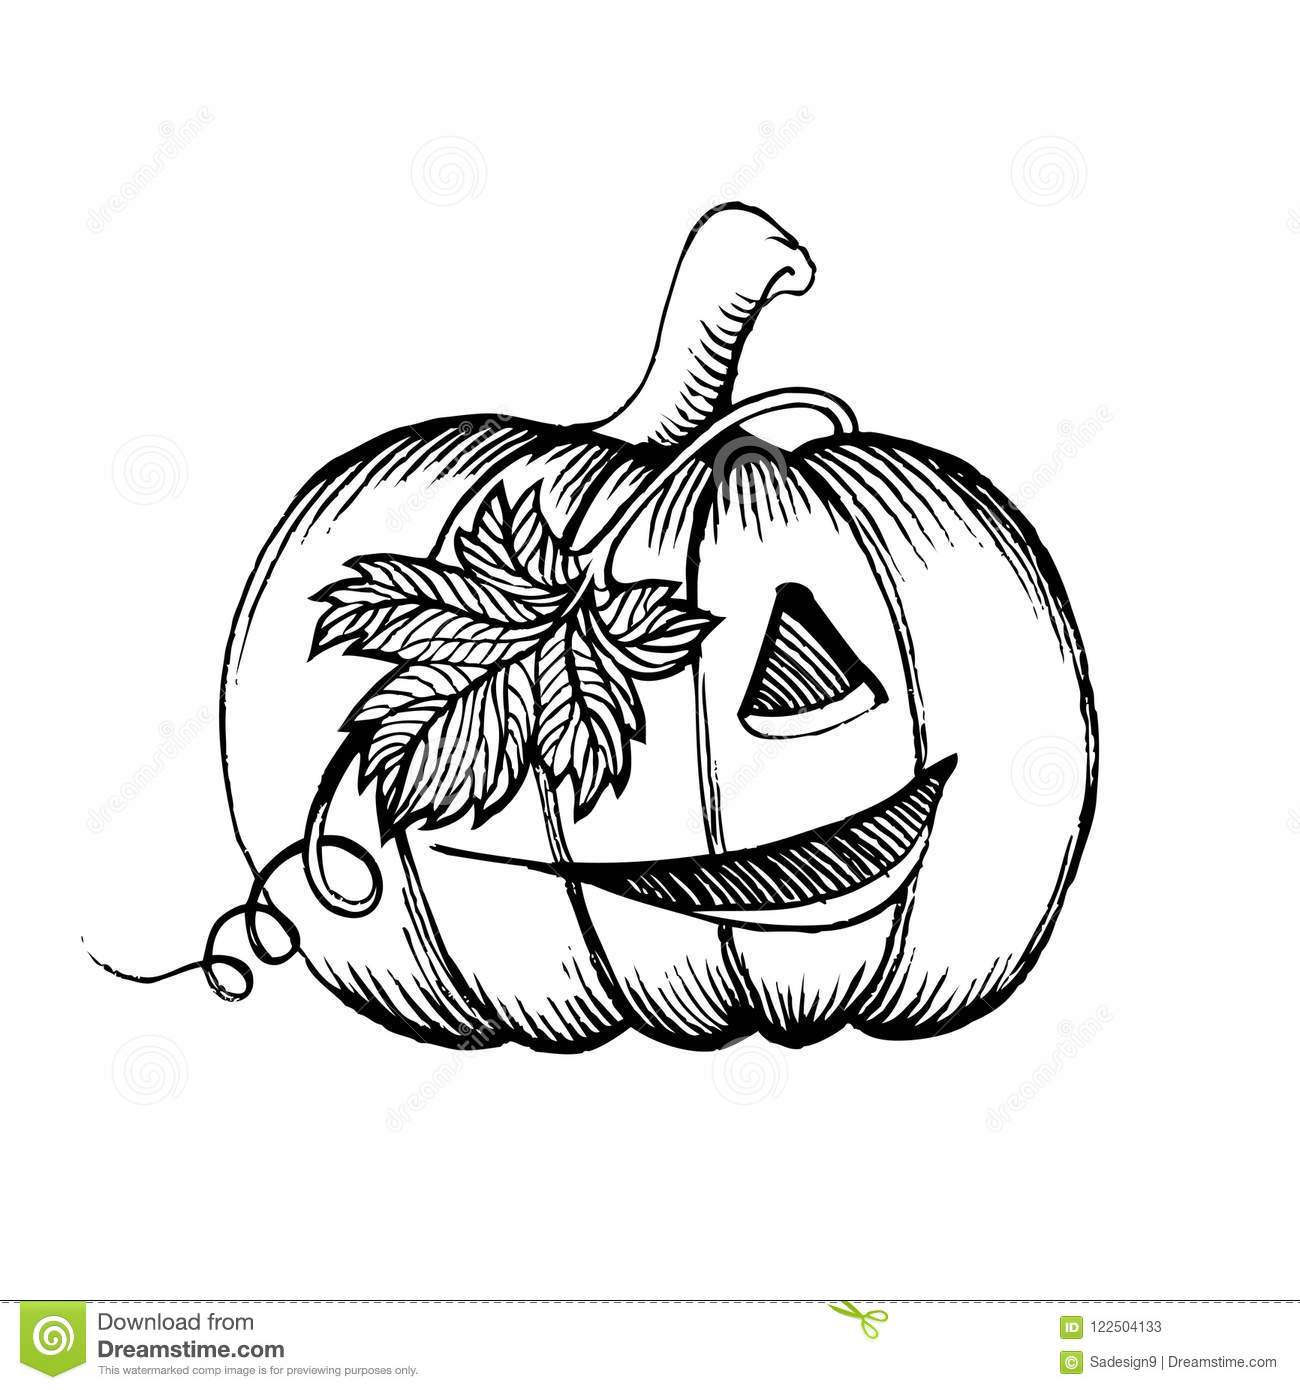 Halloween Pumpkin Sketch Drawing With Leaves Pirate